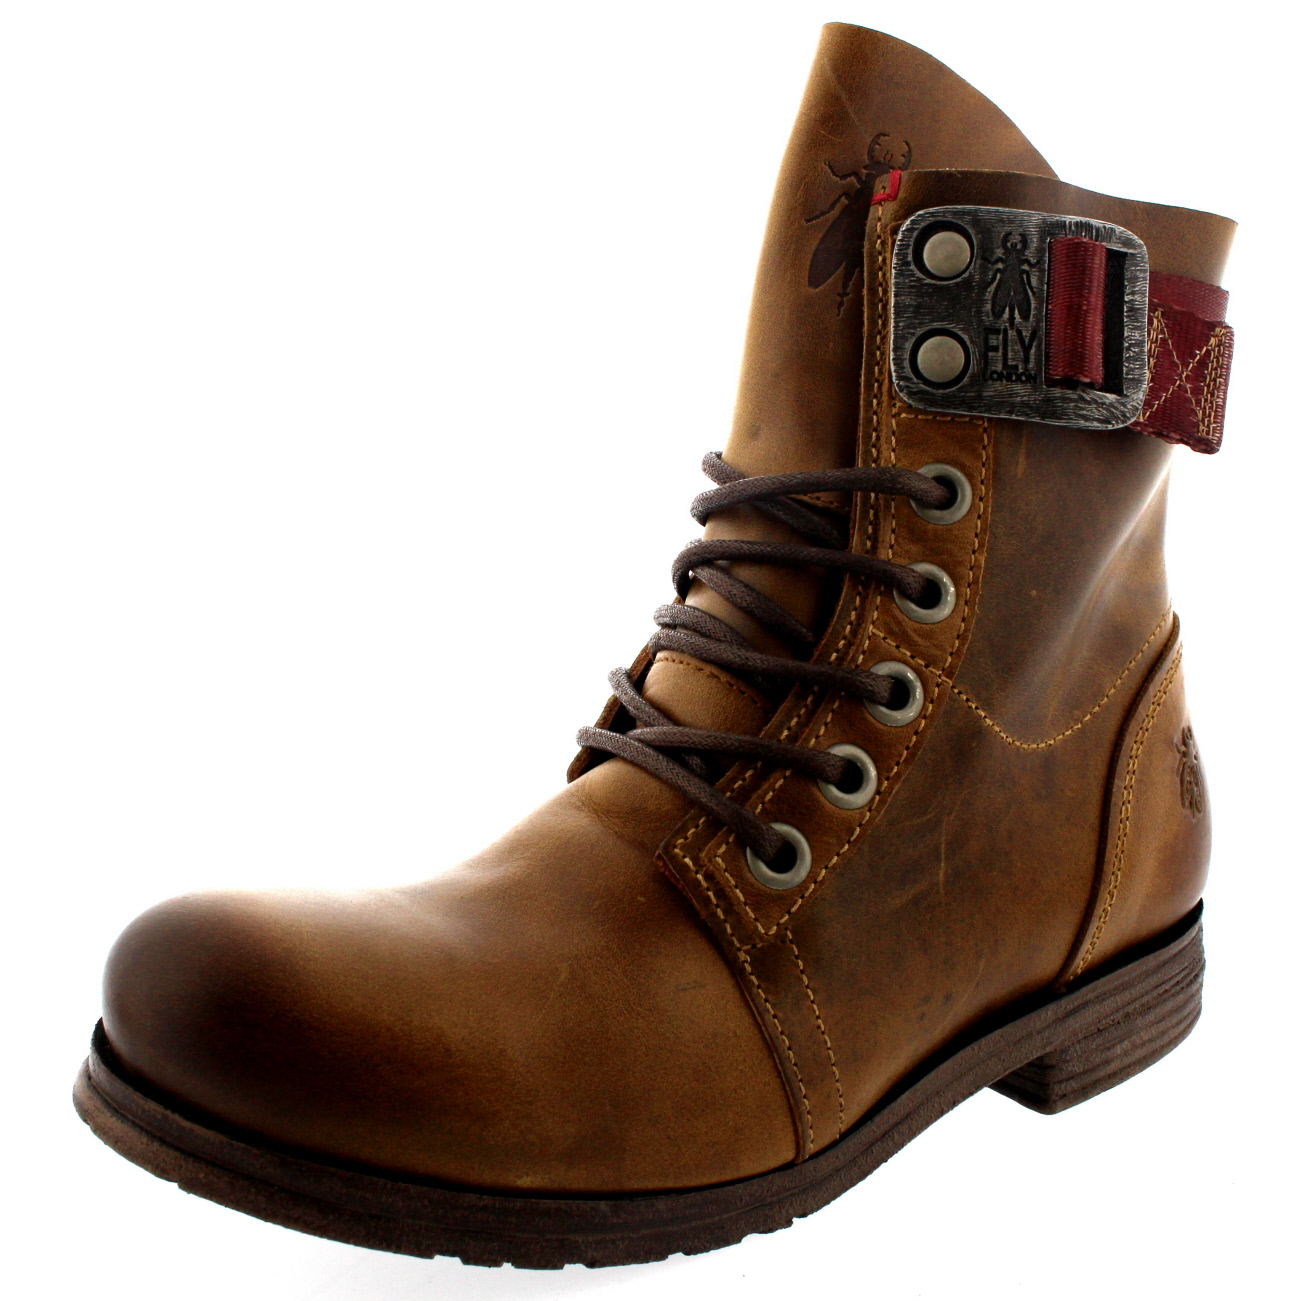 FREE DELIVERY ON ALL UK ORDERS. Home. Womens. Riding Boot. Country Boots. Country Boots. From waterproof Mountain horse boots to Musto boots with zips for ease all our boots will suit your every need. Stocked by well-known brands, including Ariat, Dublin and Brogini, look good all the time and combine your brand new country boots with one.